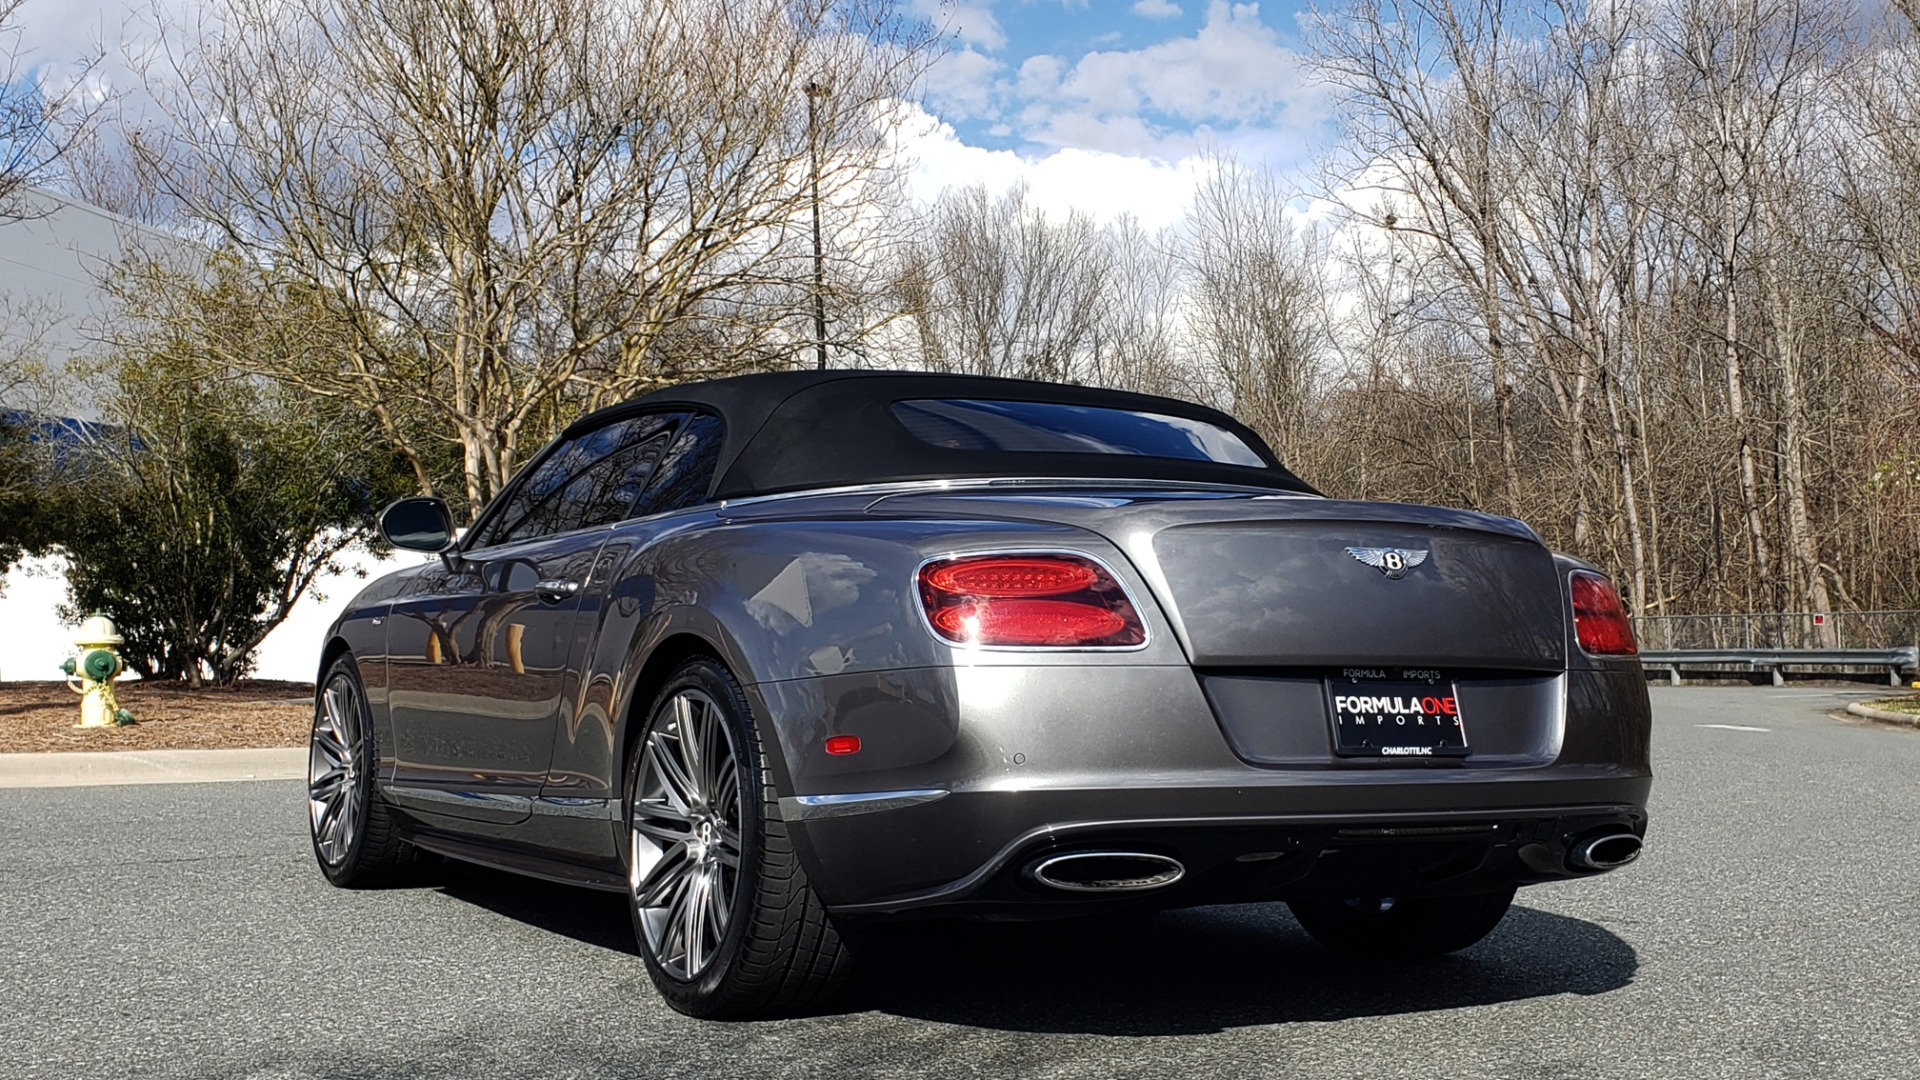 Used 2015 Bentley CONTINENTAL SPEED CONV / 6.0L W12 / NAV / VENT SEATS / REARVIEW for sale Sold at Formula Imports in Charlotte NC 28227 8